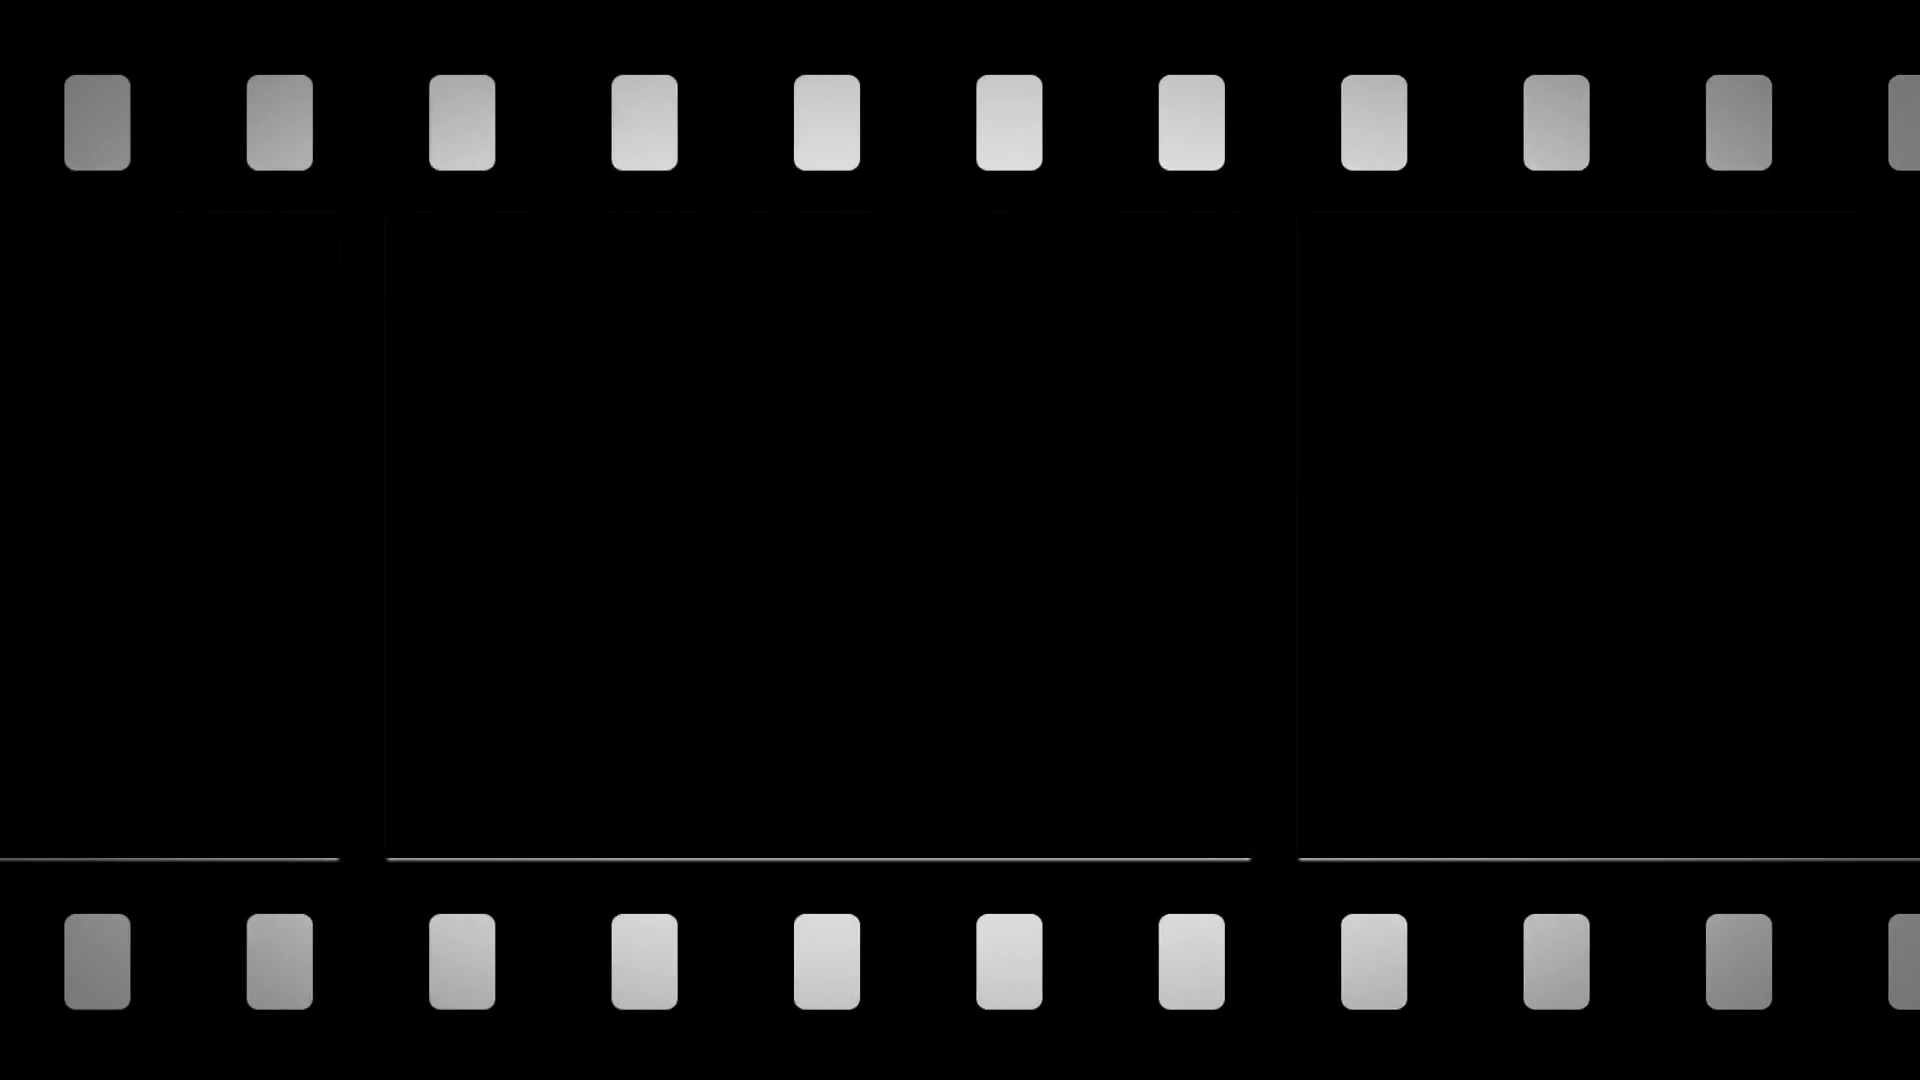 Black And White Film Strip PNG - 157810